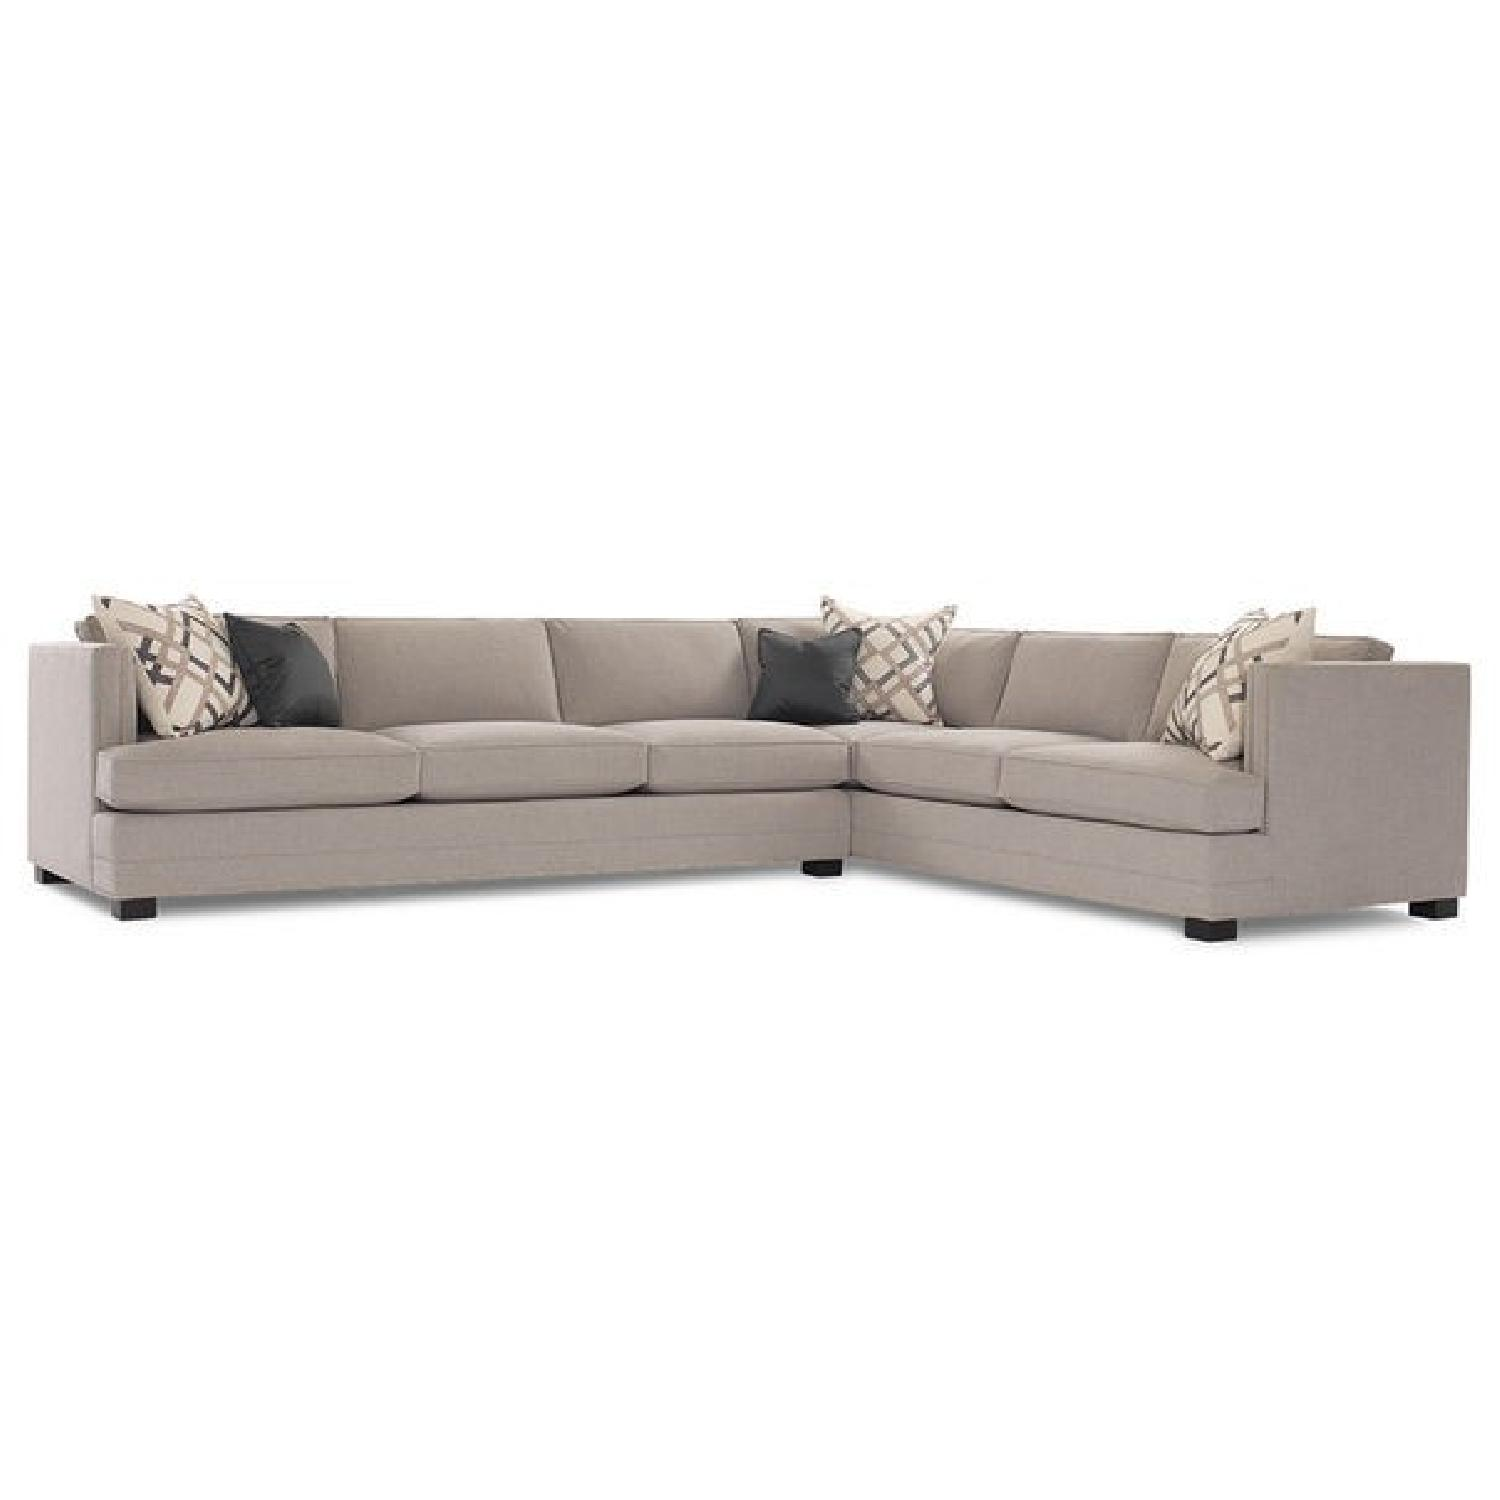 Mitchell Gold + Bob Williams Keaton Sectional in Taupe Grey-1